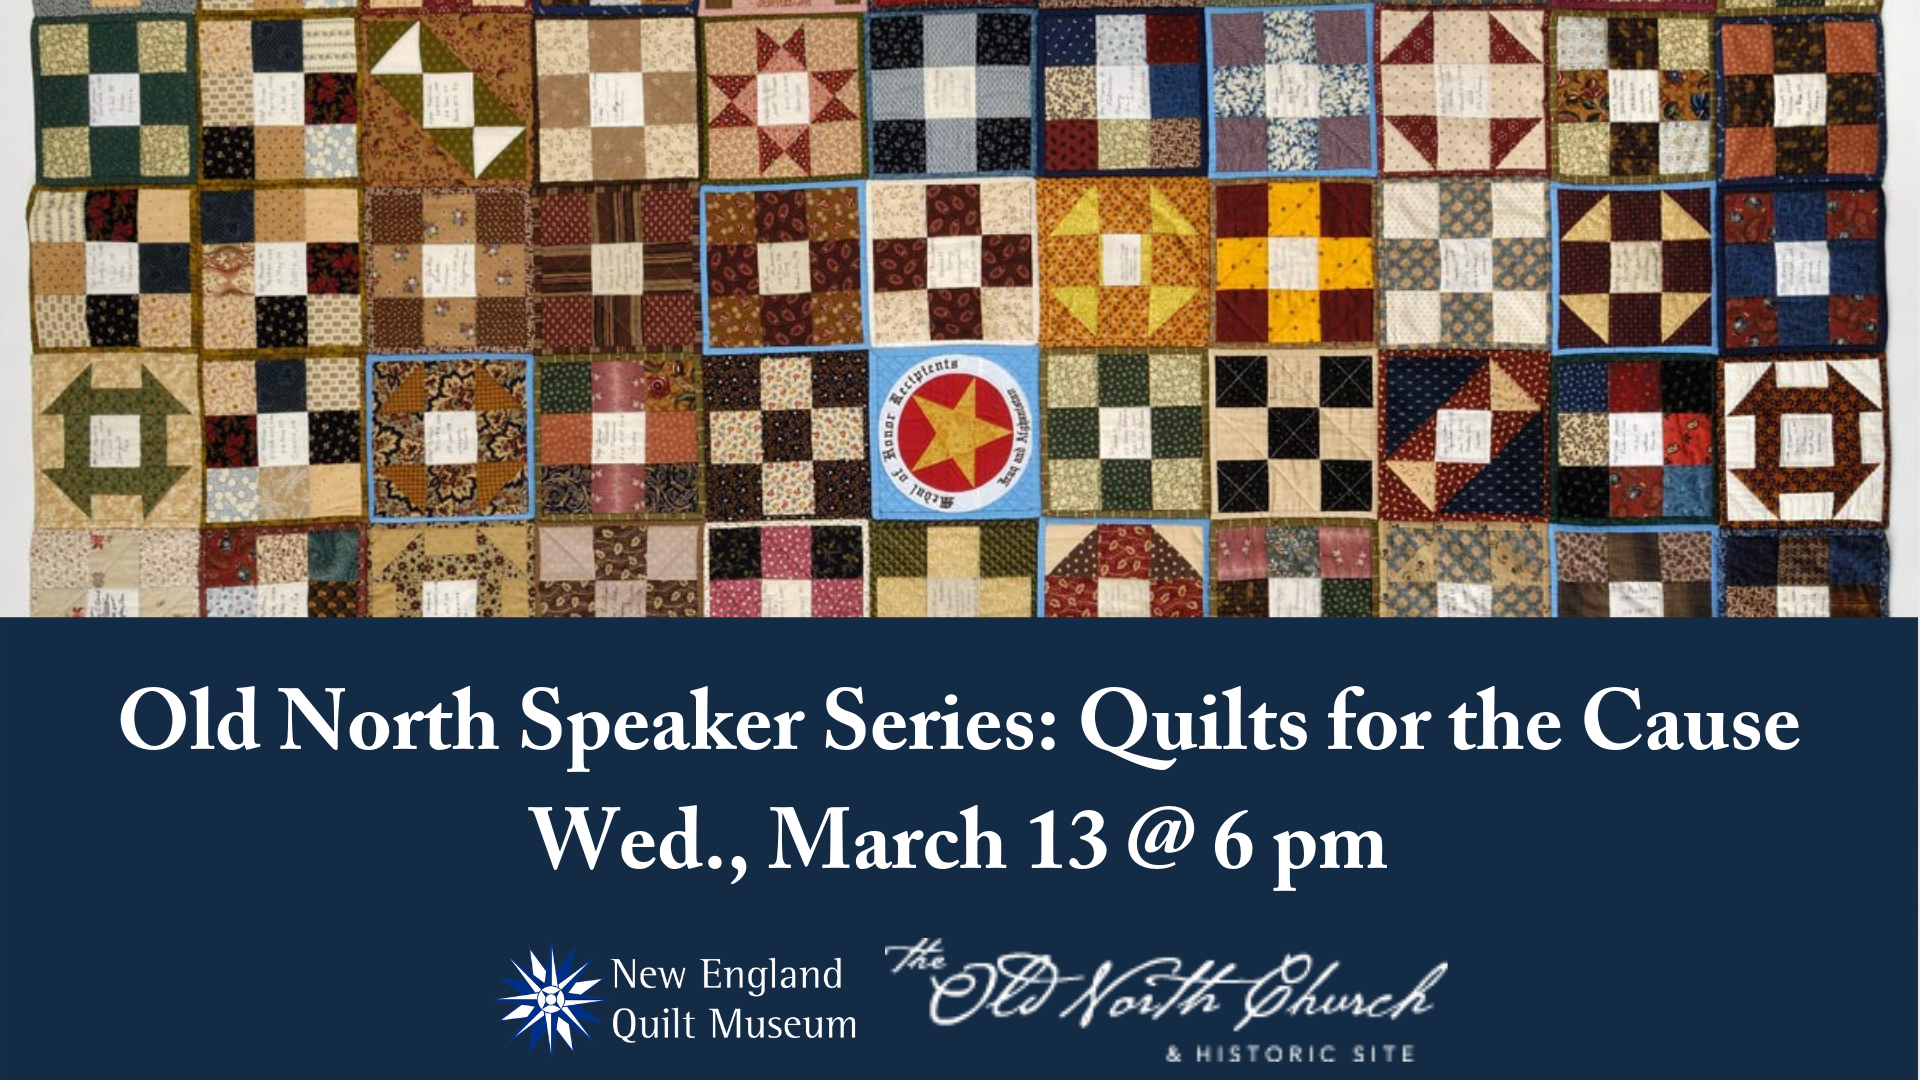 Old North Speaker Series_ Quilts for the Cause Wed., March 3 @ 6 pm (1).png